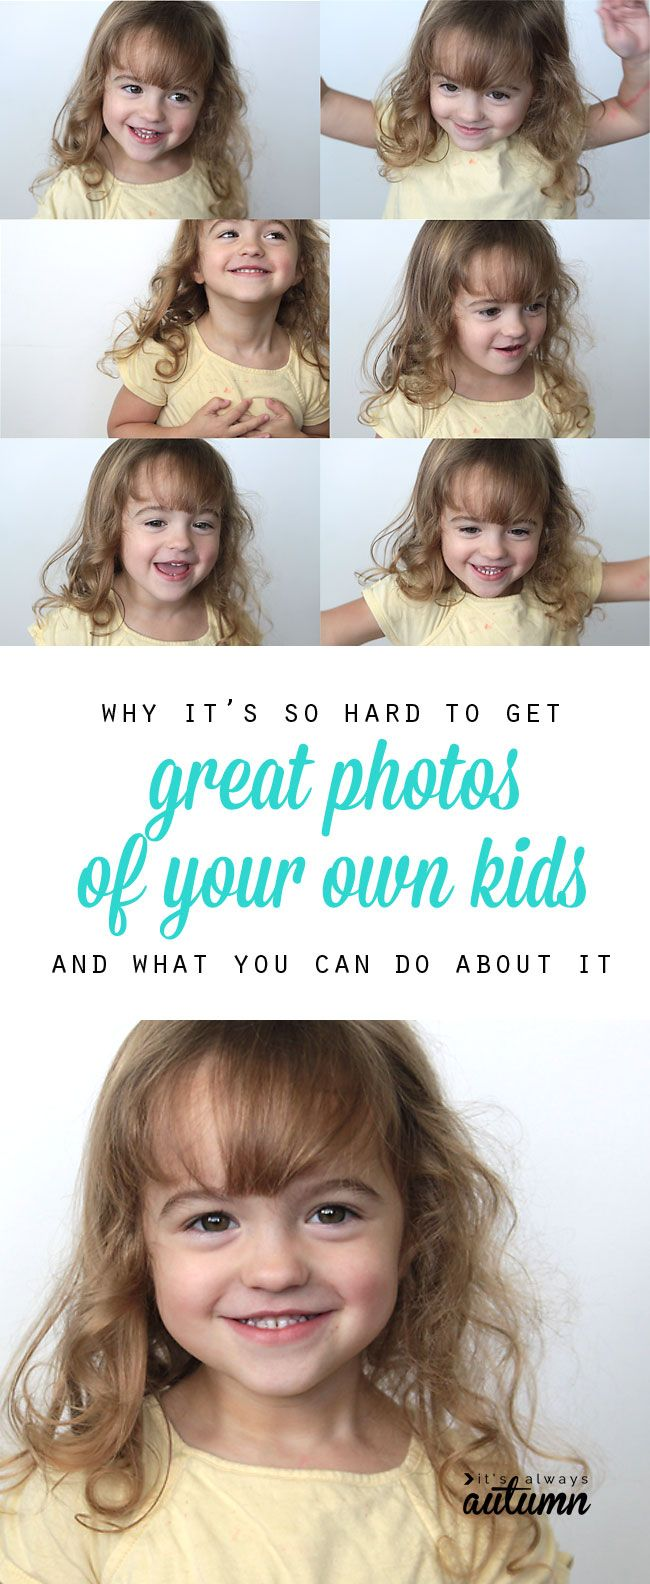 this post has some great ideas for making it a little easier to take great photos of your own kids. photography tips